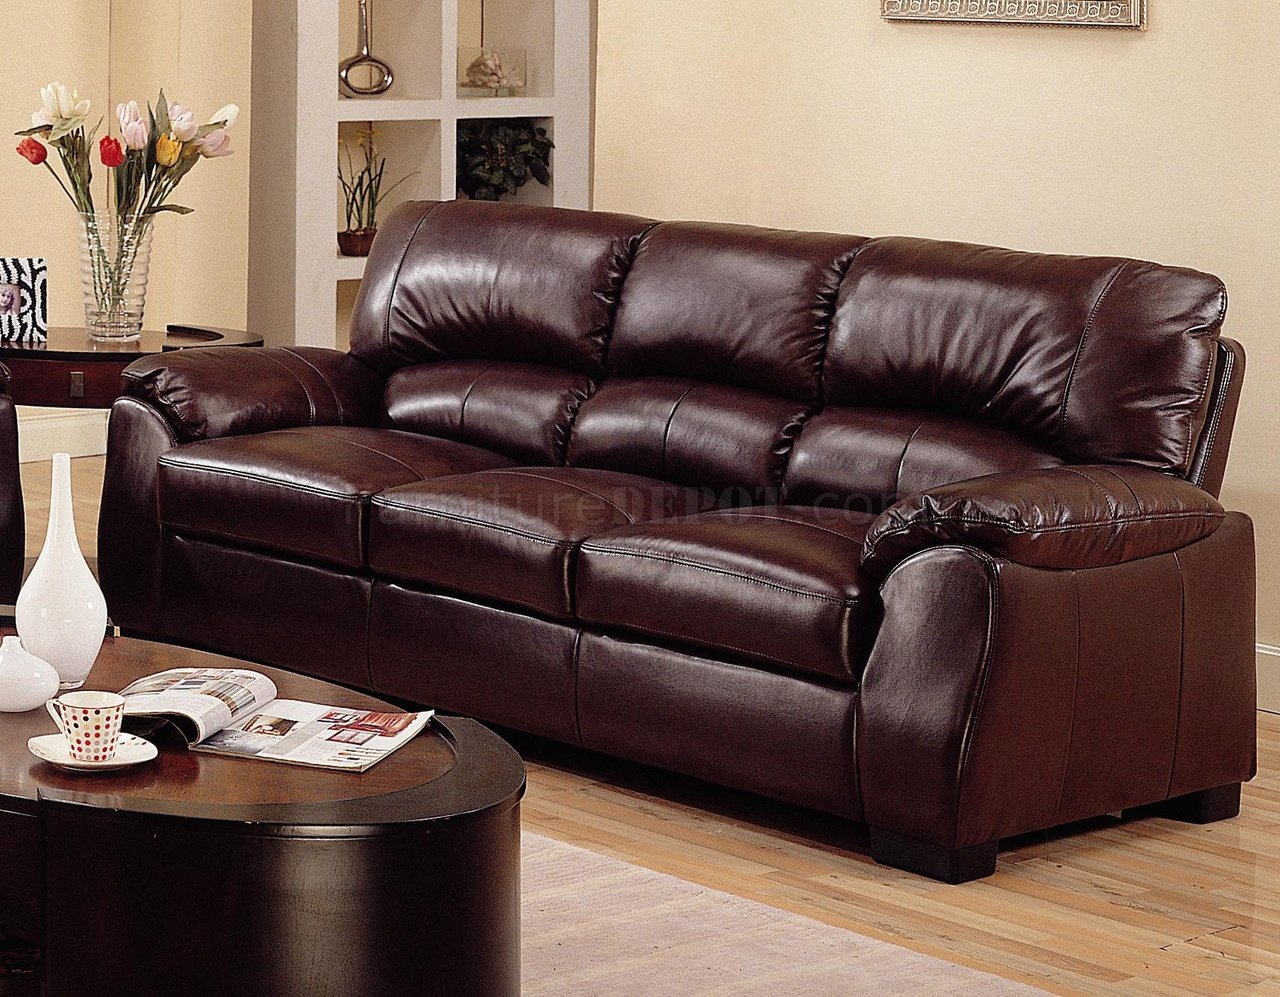 leather sofa brown contemporary tweed rich match living room w